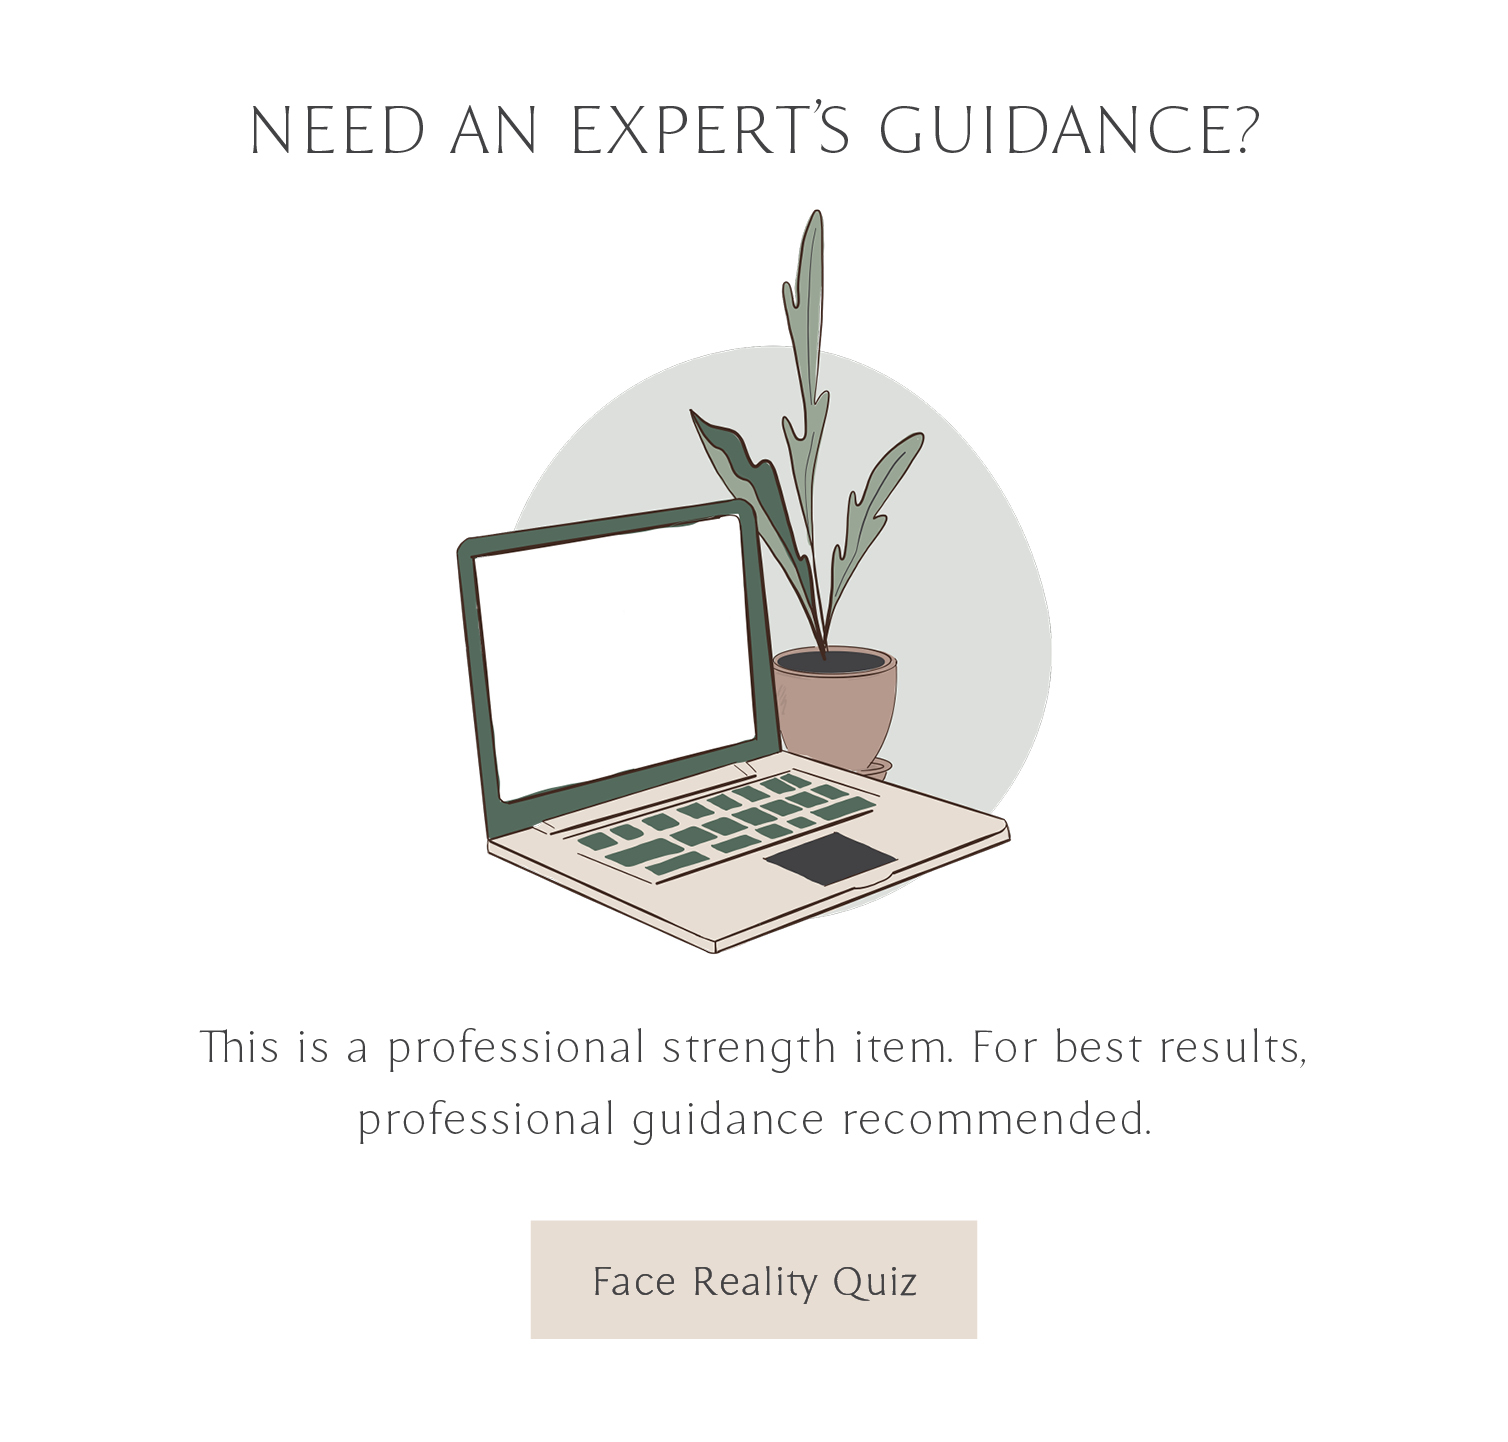 new-professional-guidance-graphic-small.jpg